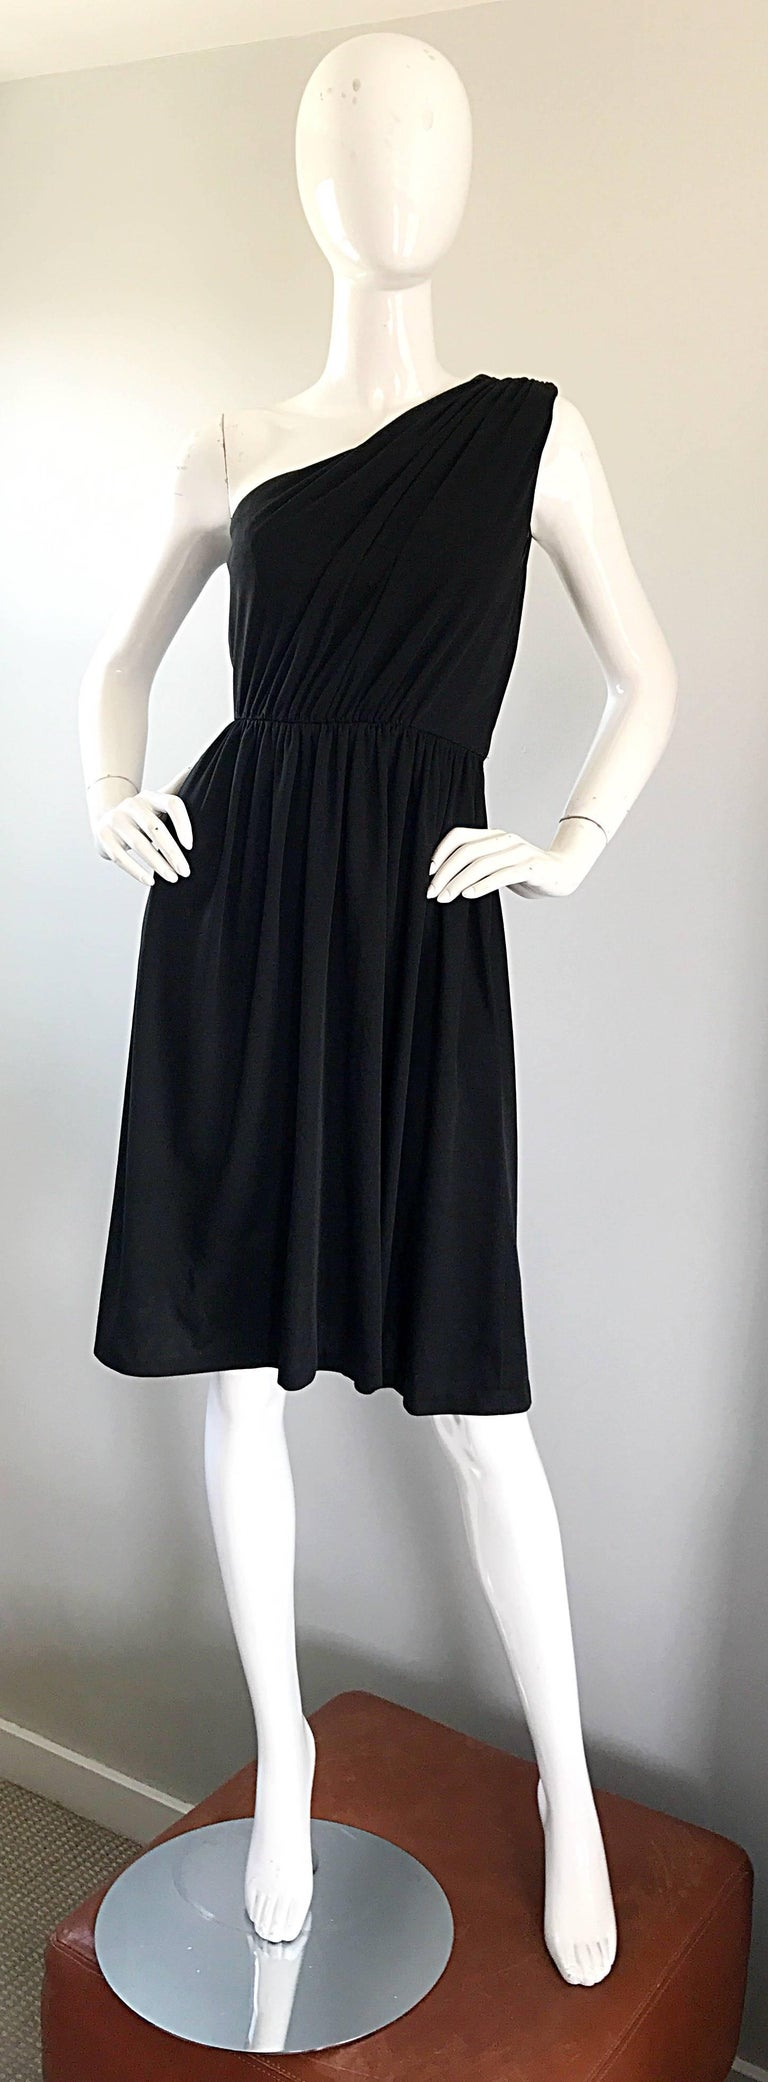 Amazing 1970s vintage ANTHONY MUTO for JOSPEH MAGNIN one shoulder black jersey dress! Beautifully draped bodice, with a free flowing knee length skirt. So much attention to detail went into the construction of this gem. Definitely has a Halston feel